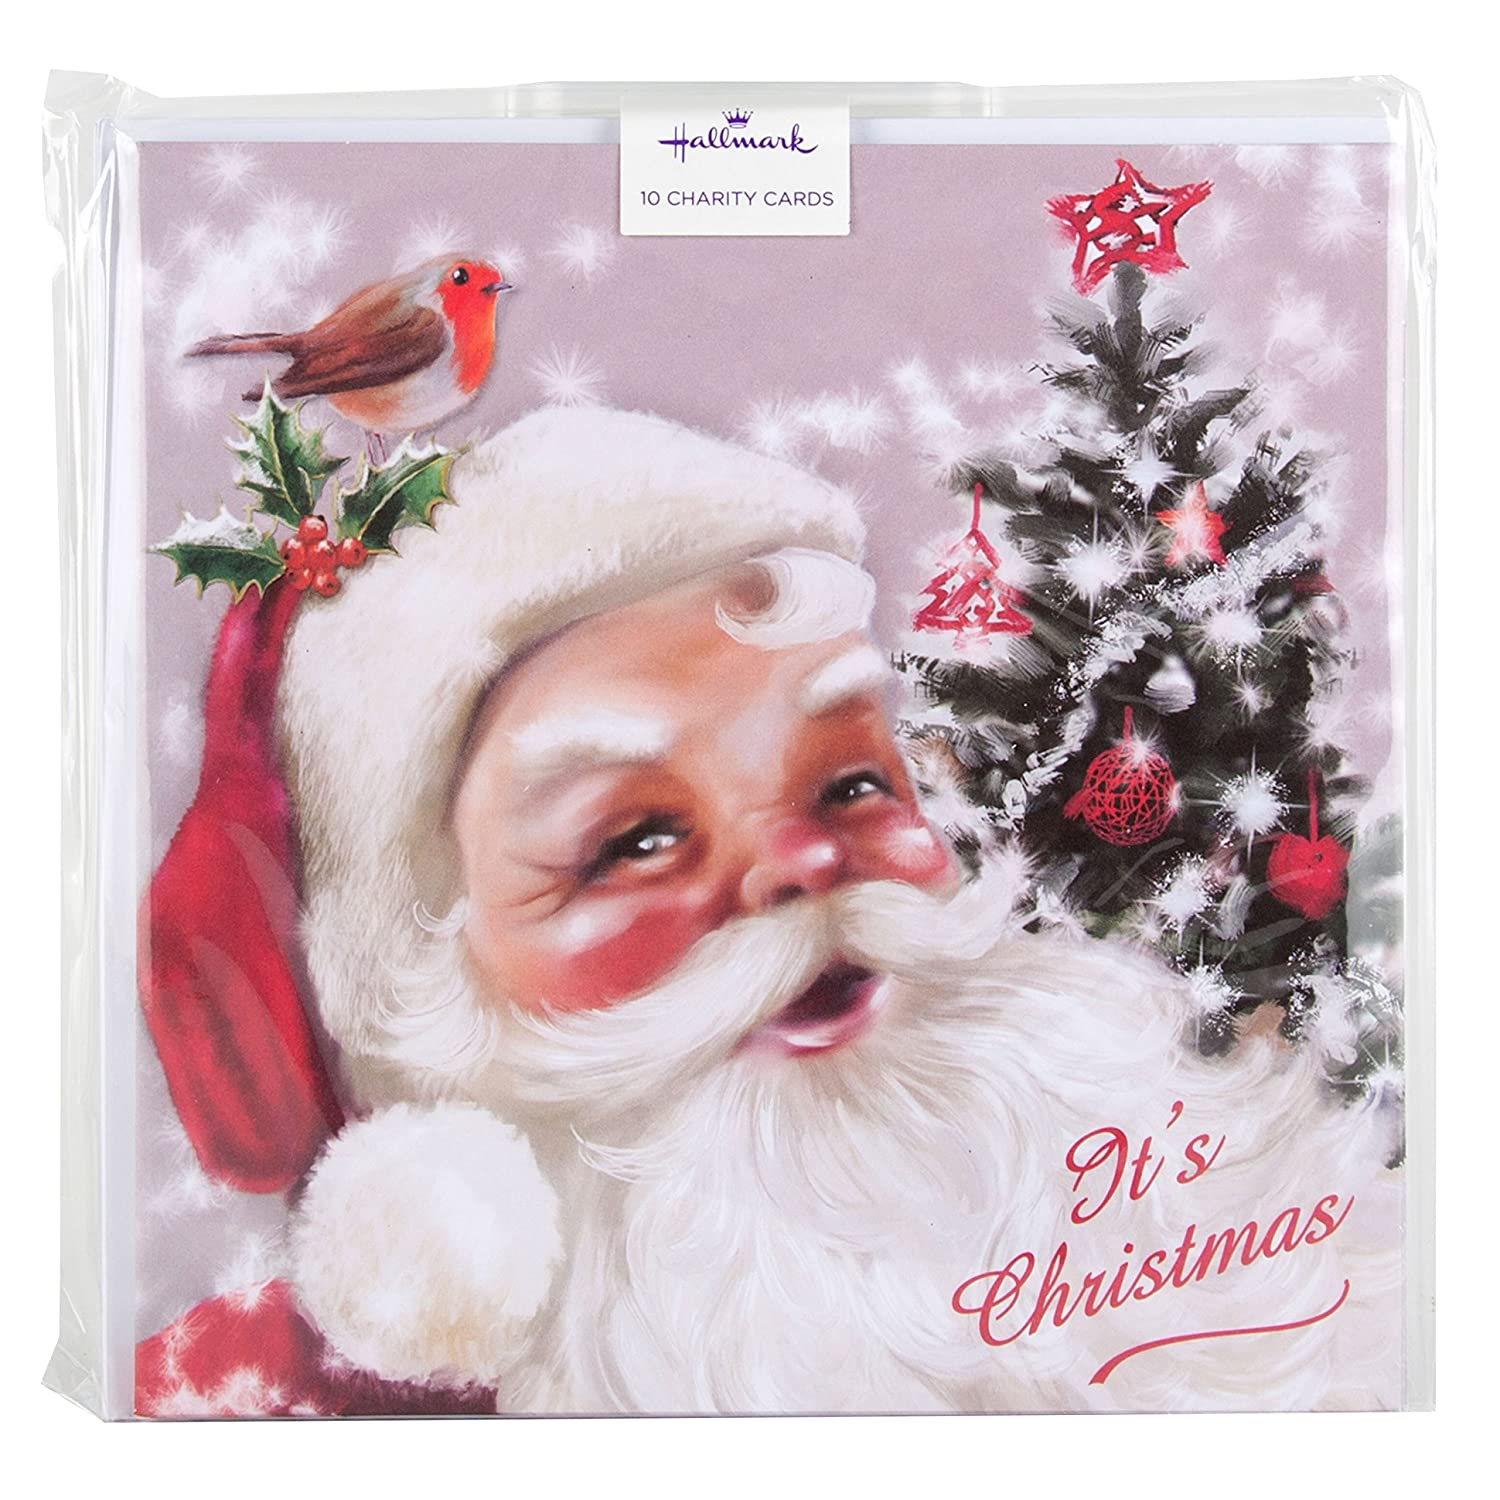 Friend Hallmark Traditional Luxury New Christmas Greeting Card /'Smiles/' Large